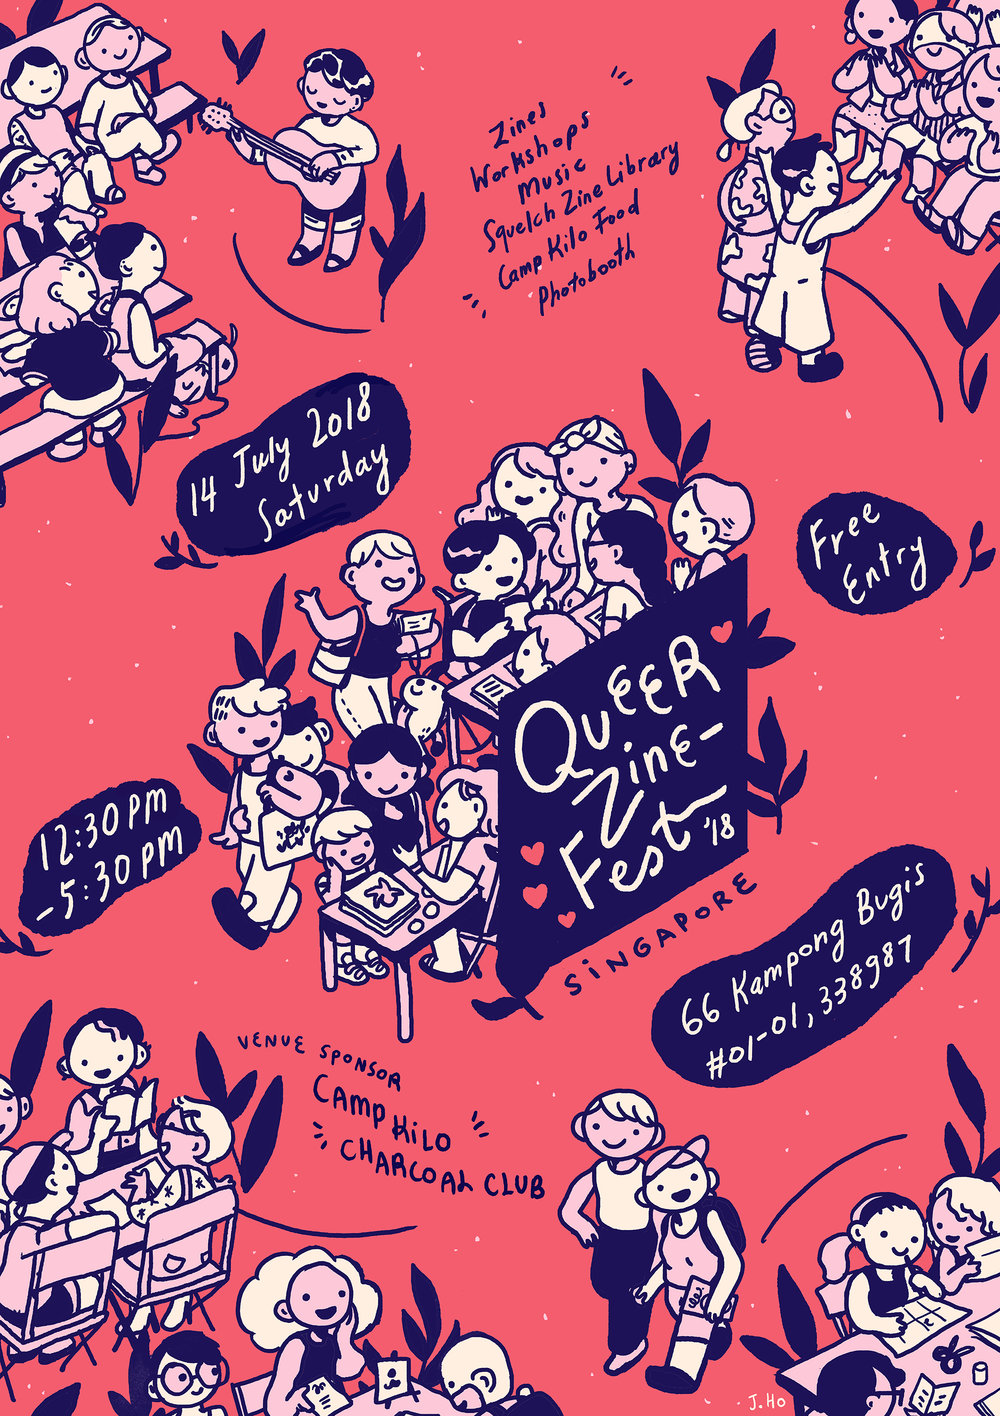 Look at this gorgeous poster that Joy Ho illustrated!